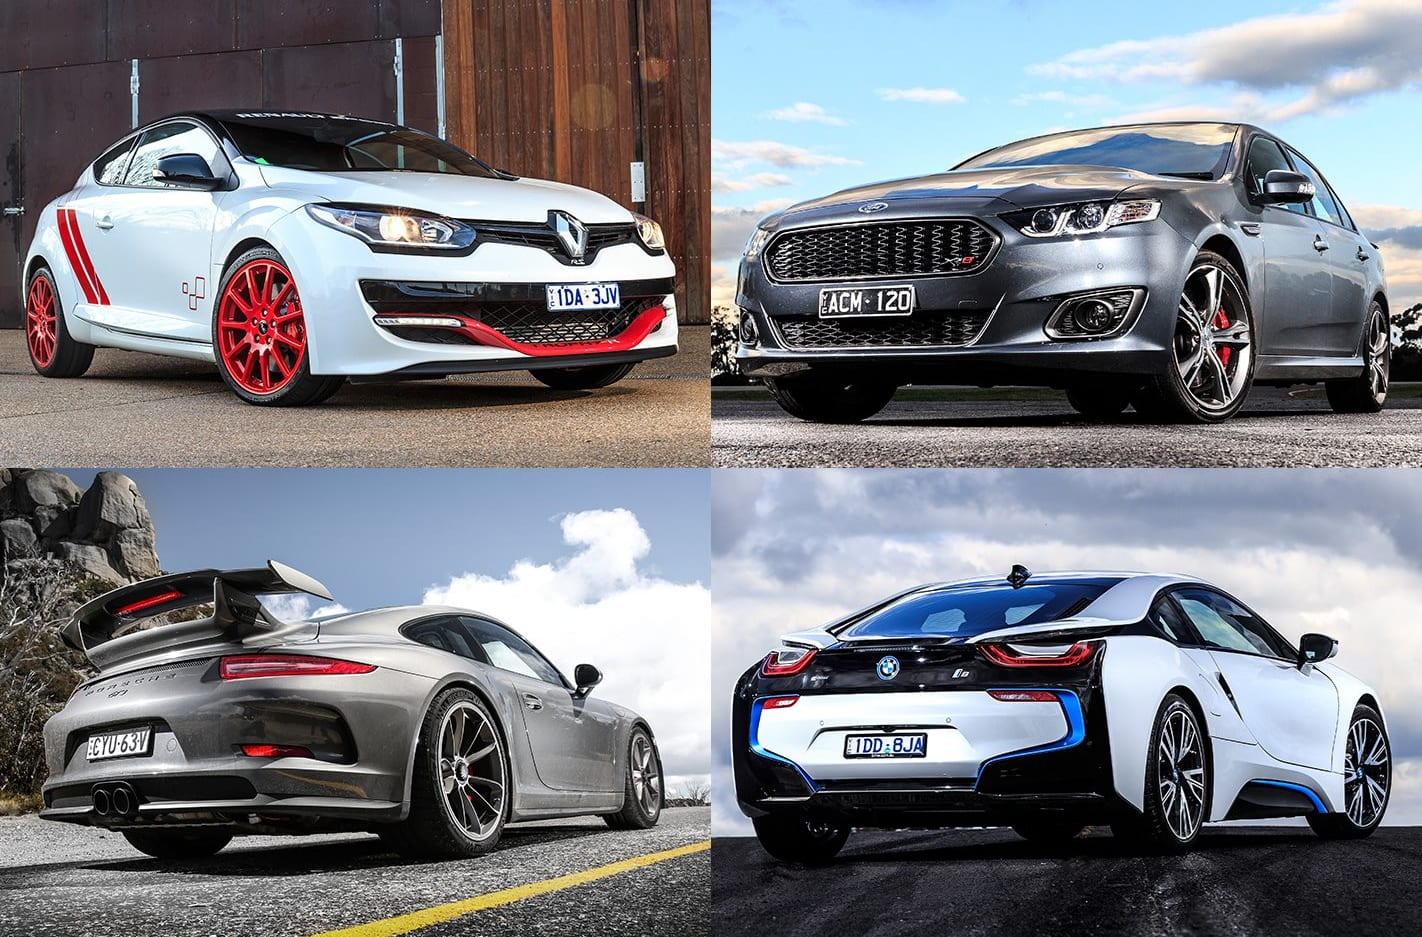 PCOTY 2016 The contenders